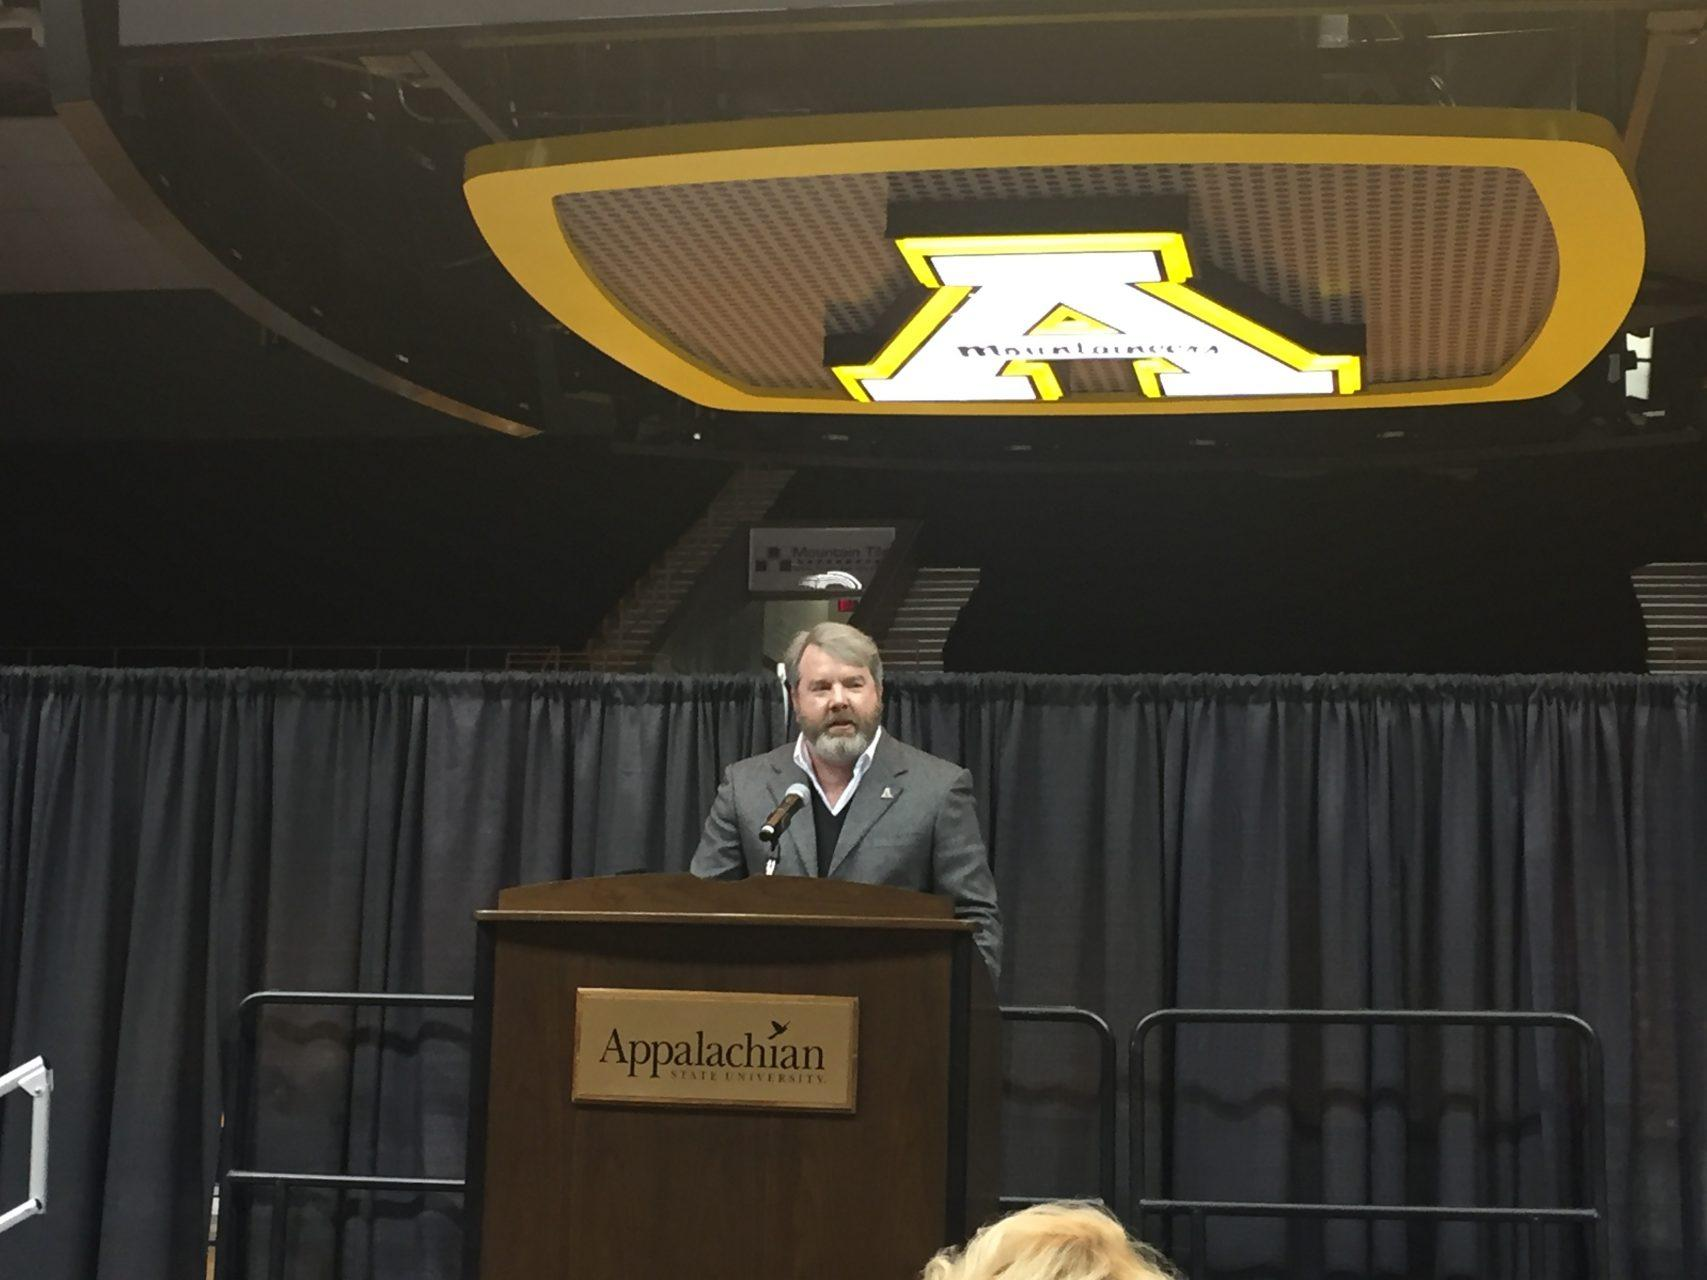 Mark Ricks, App State class of 1989, spoke in front of student-athletes, fans, App State faculty and coaches at a ceremony in Holmes Convocation Center on Thursday, November 9, 2017. He was appointed to the App State board of trustees on July 27, 2018.